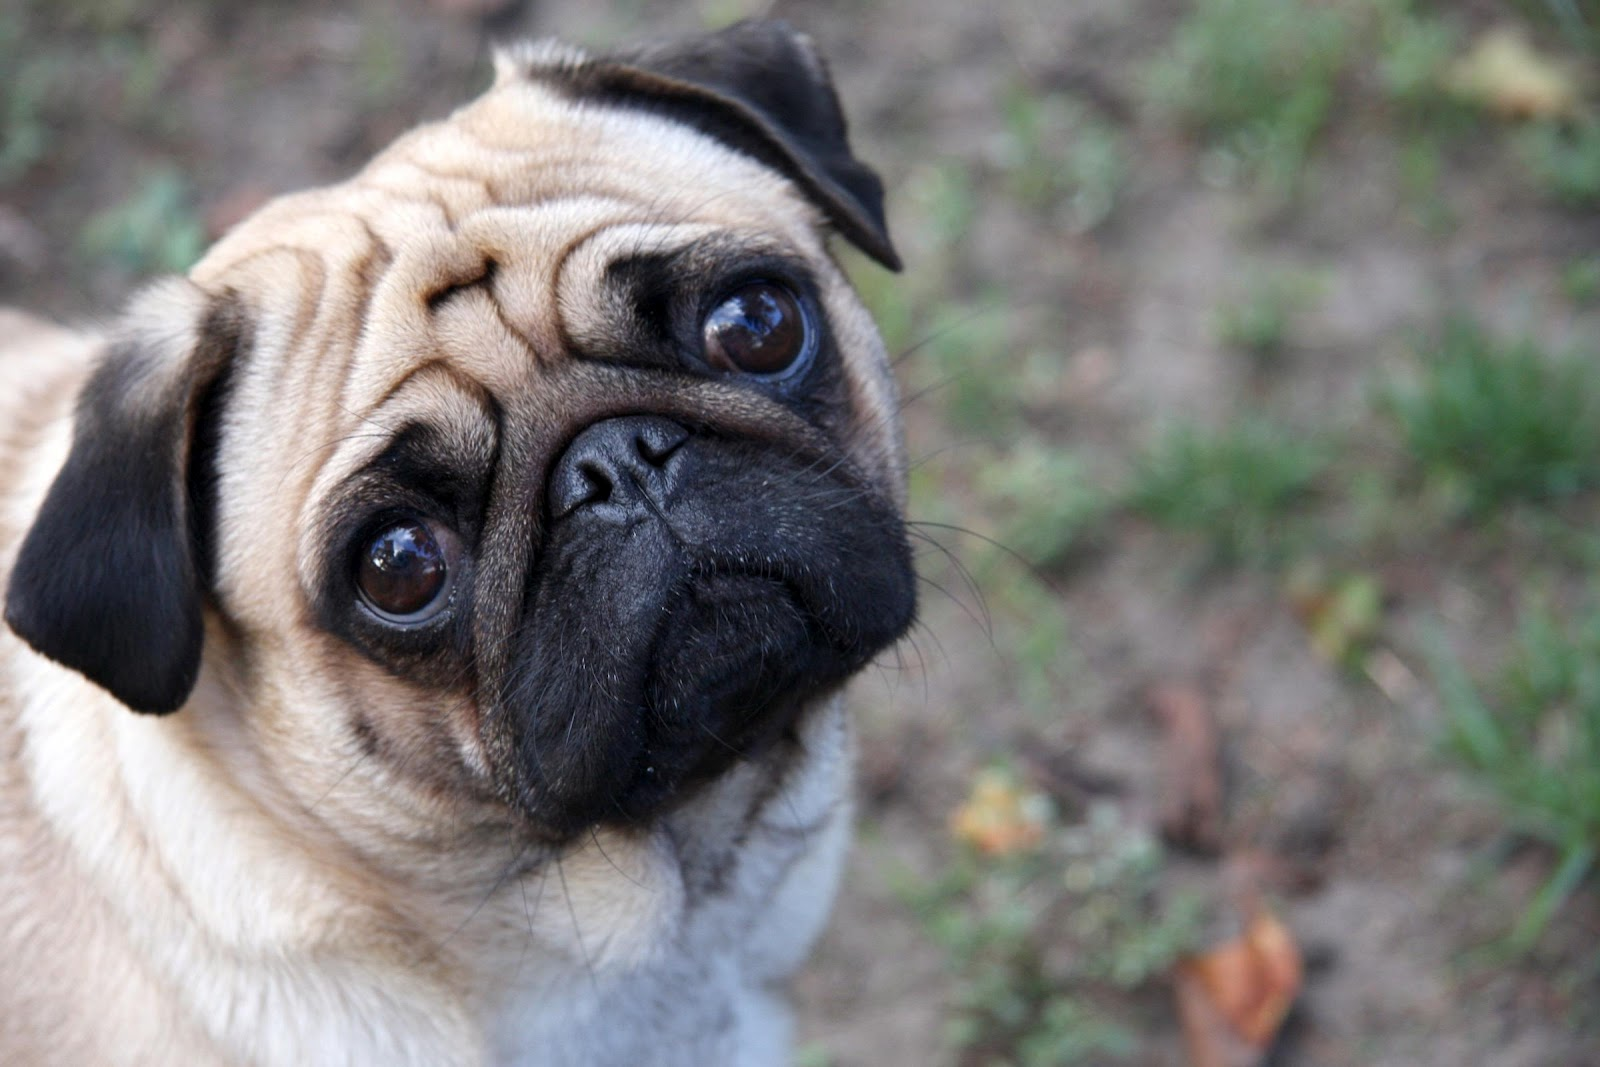 All Wallpapers: Pug Dog Hd Wallpapers